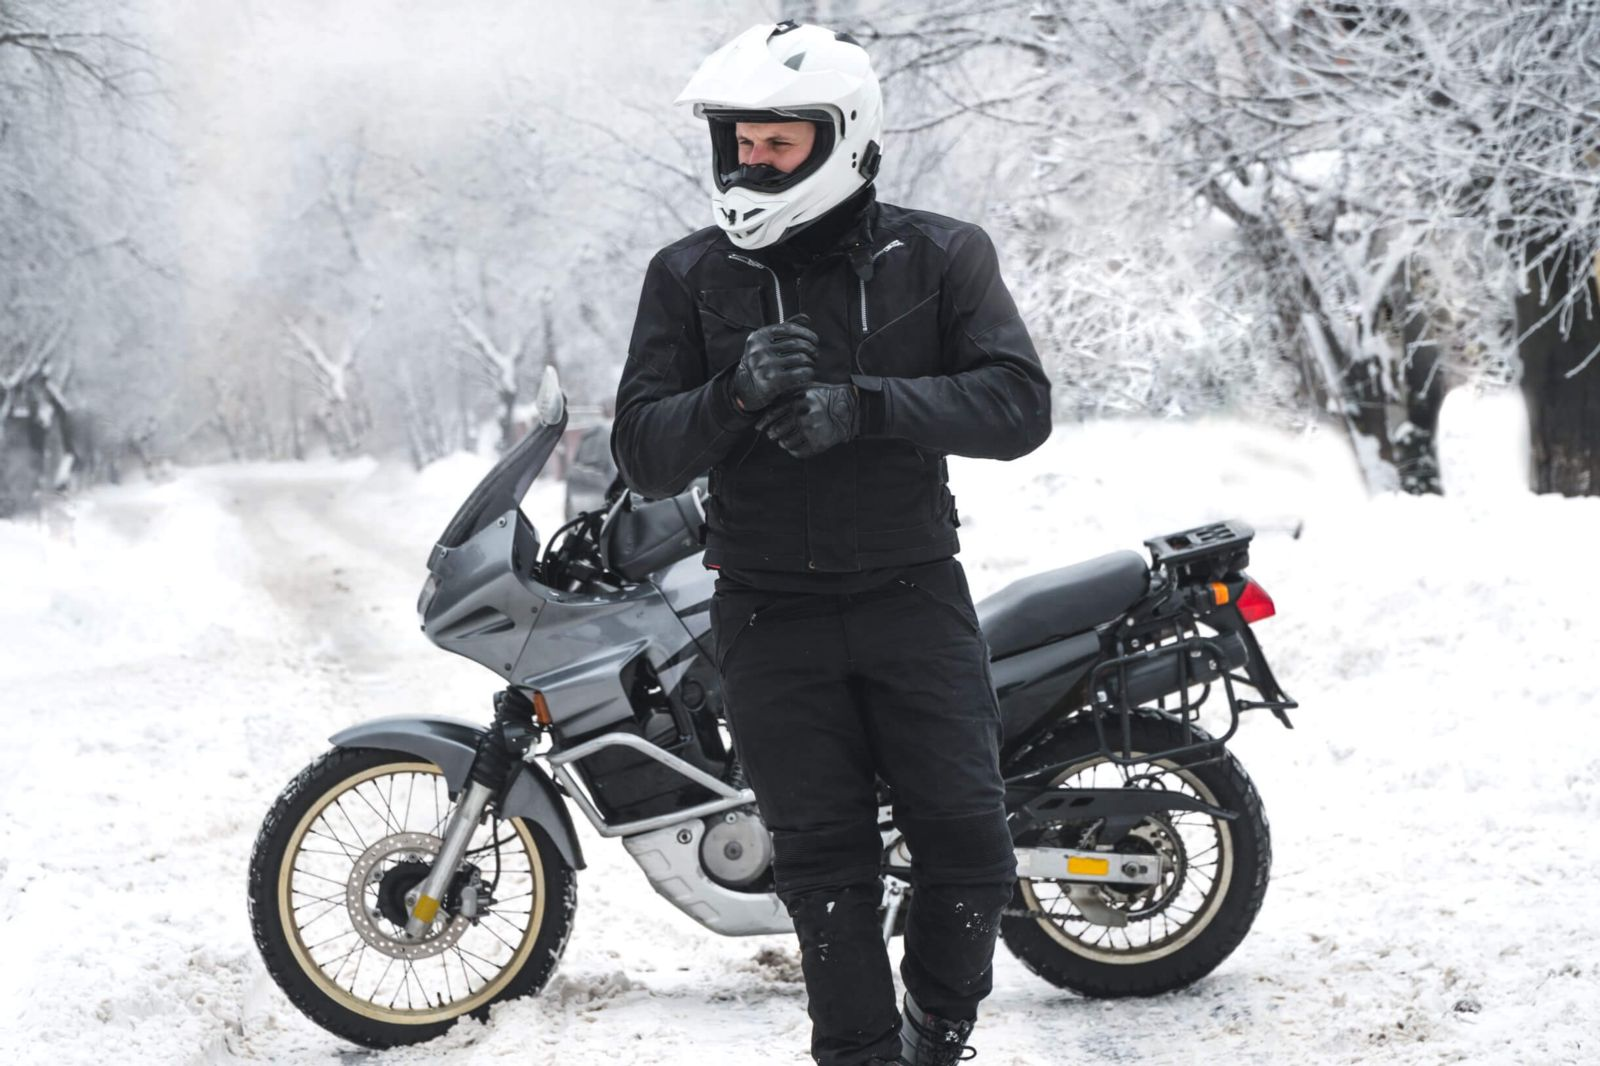 Riding a motorcycle in the snow